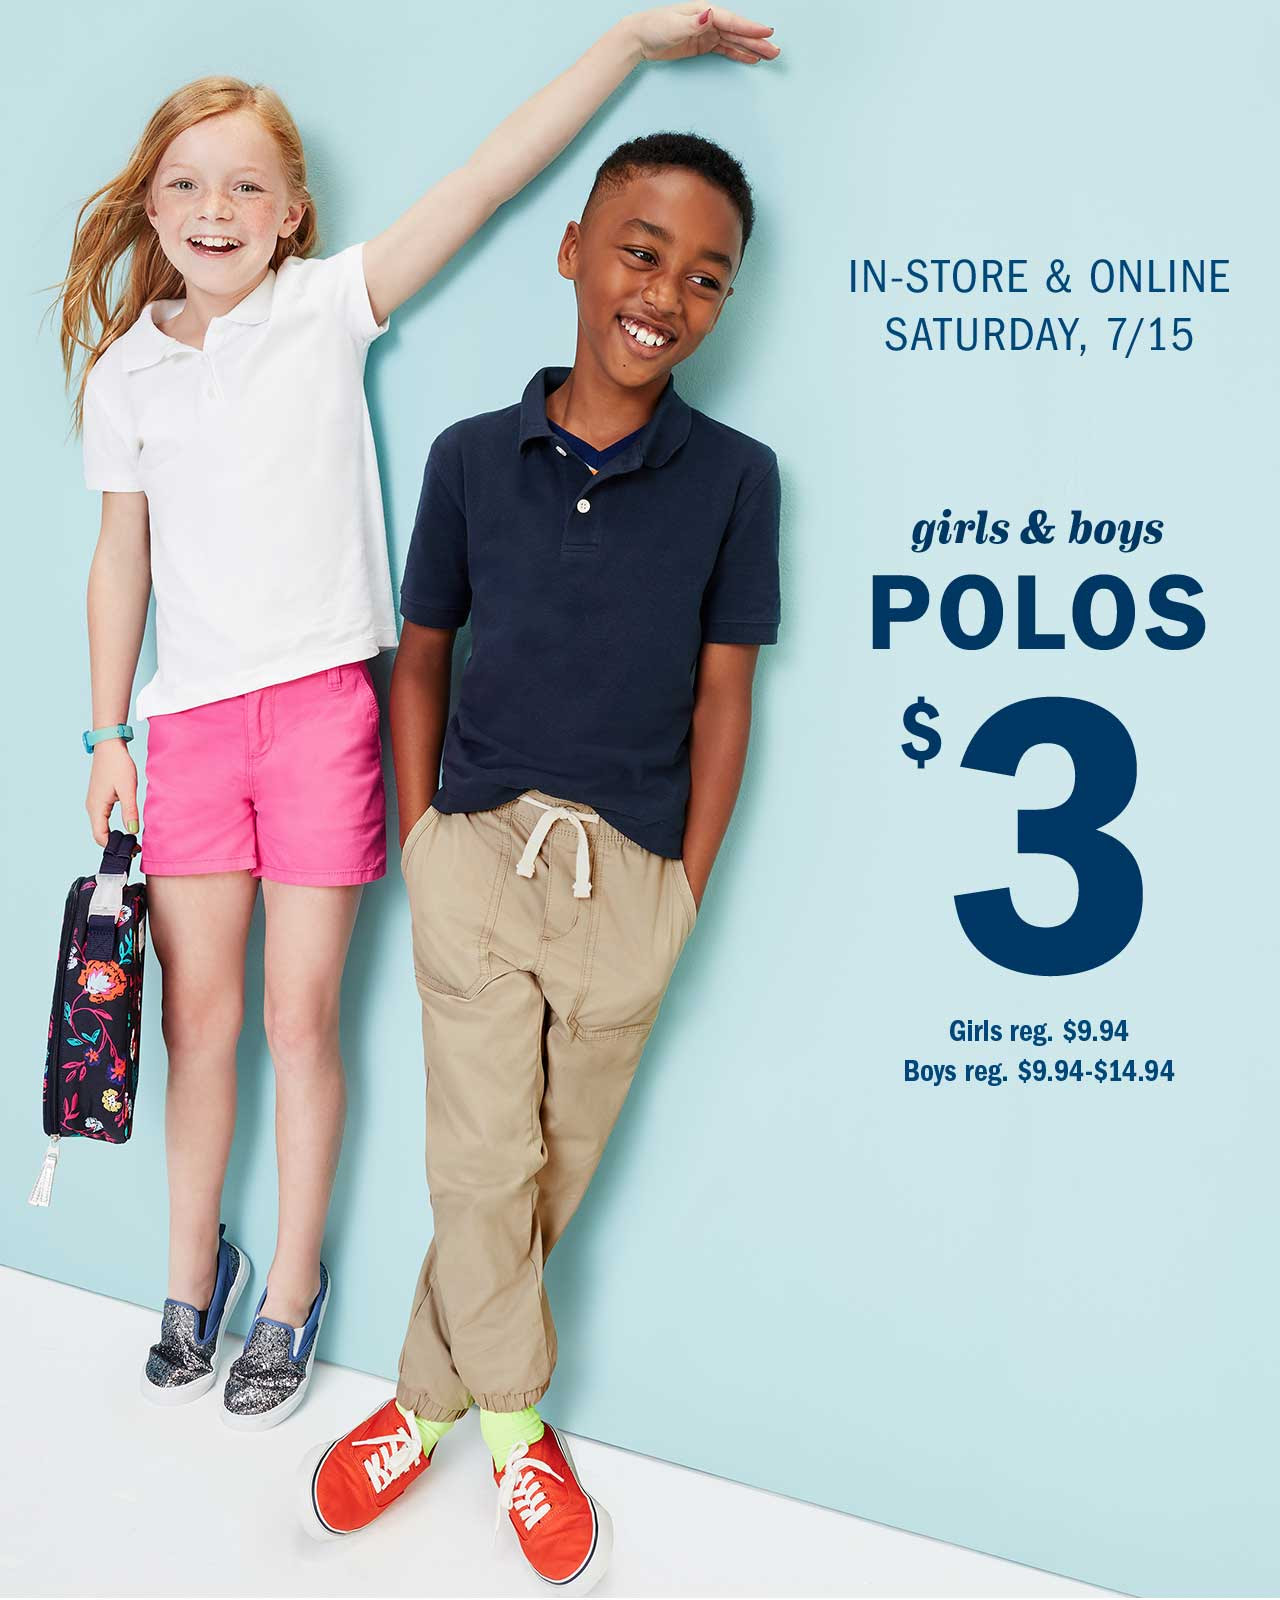 IN-STORE & ONLINE SATURDAY, 7/15 | girls & boys POLOS $3